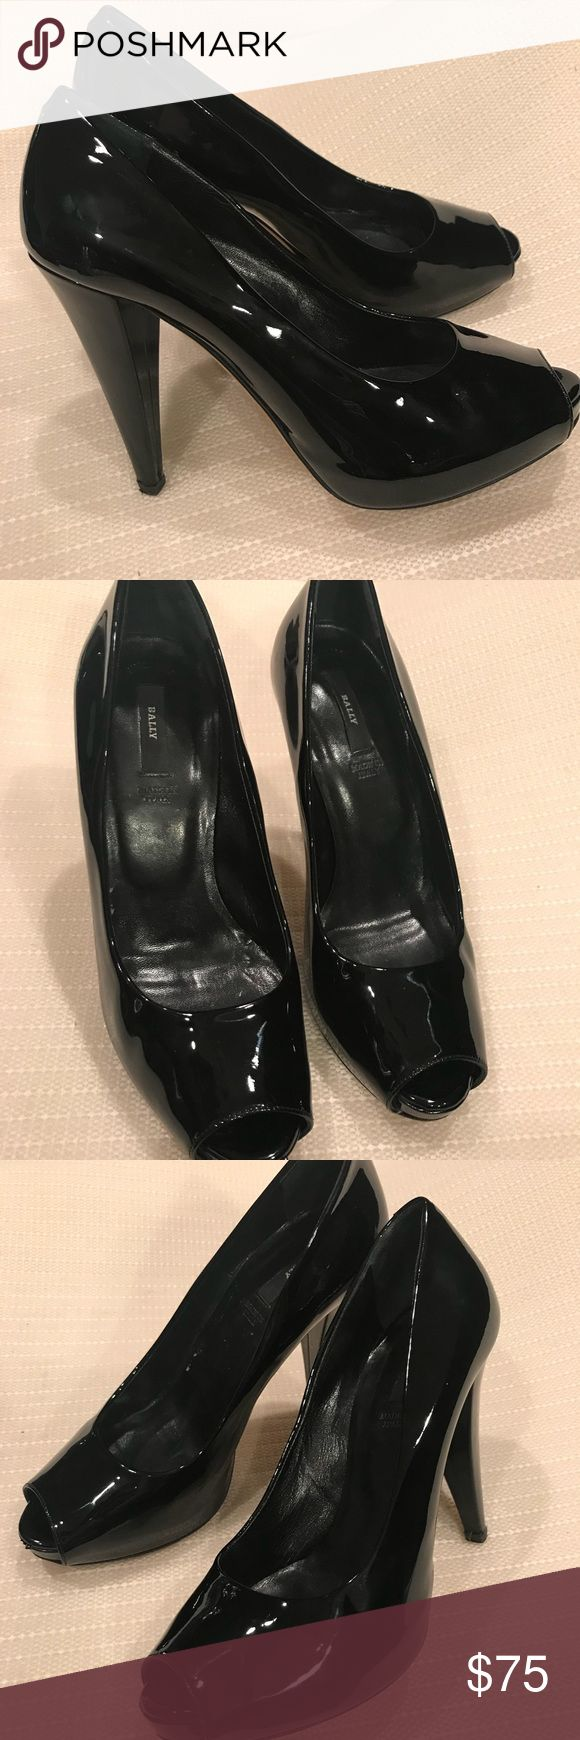 Authentic Bally peep toe patent leather heels Super sexy shoes ! These are gorgeous & are a luxury item at a fraction of the cost ! They are jet black patent leather with minimum scuffs on soles and minor wear on uppers. These are timeless classic piece . They look fab with everything ! box not included Bally Shoes Heels